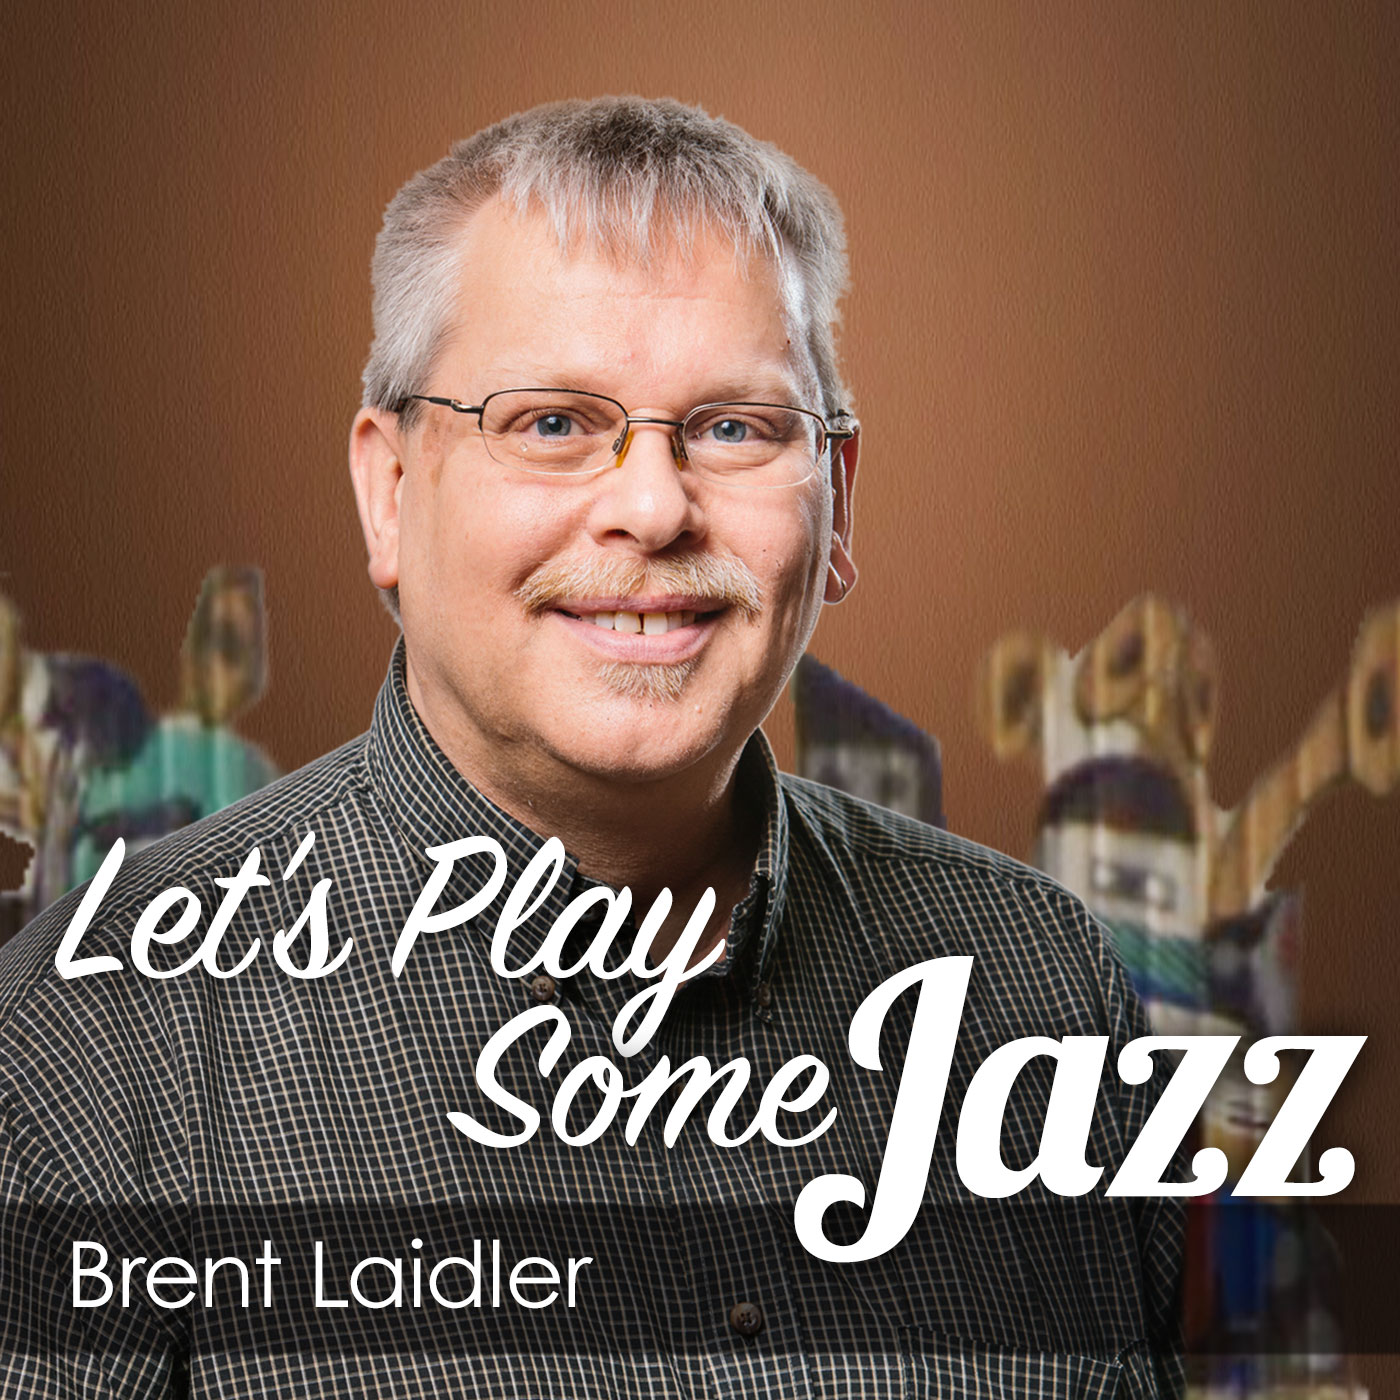 <![CDATA[Let's Play Some Jazz with Brent]]>